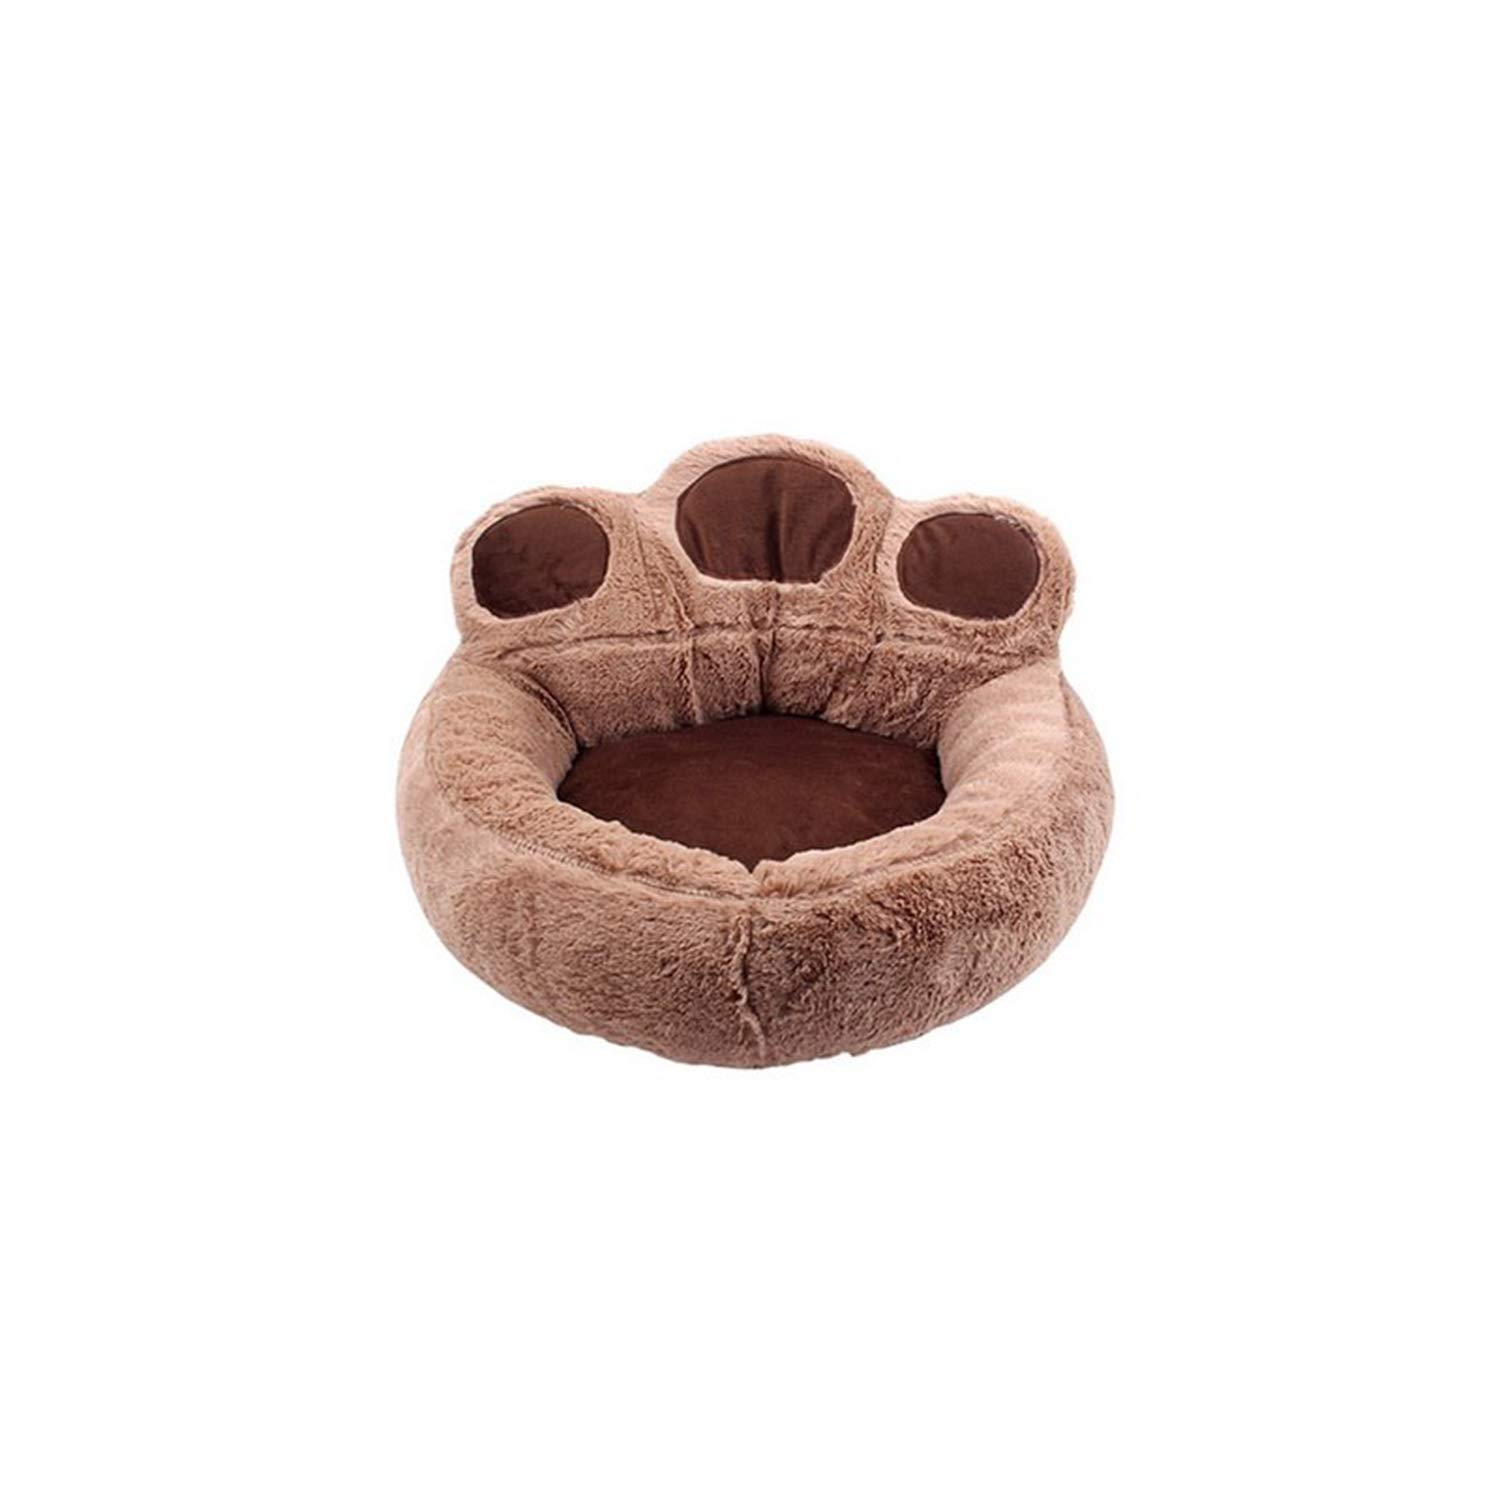 Brown M Brown M PETFDH Soft Bed & Sofa Nest Dog Baskets Fall Winter Kennel Pet Dog Bed Warm Cotton Dog House for Cat Puppy Pets Drop Shipping Brown M